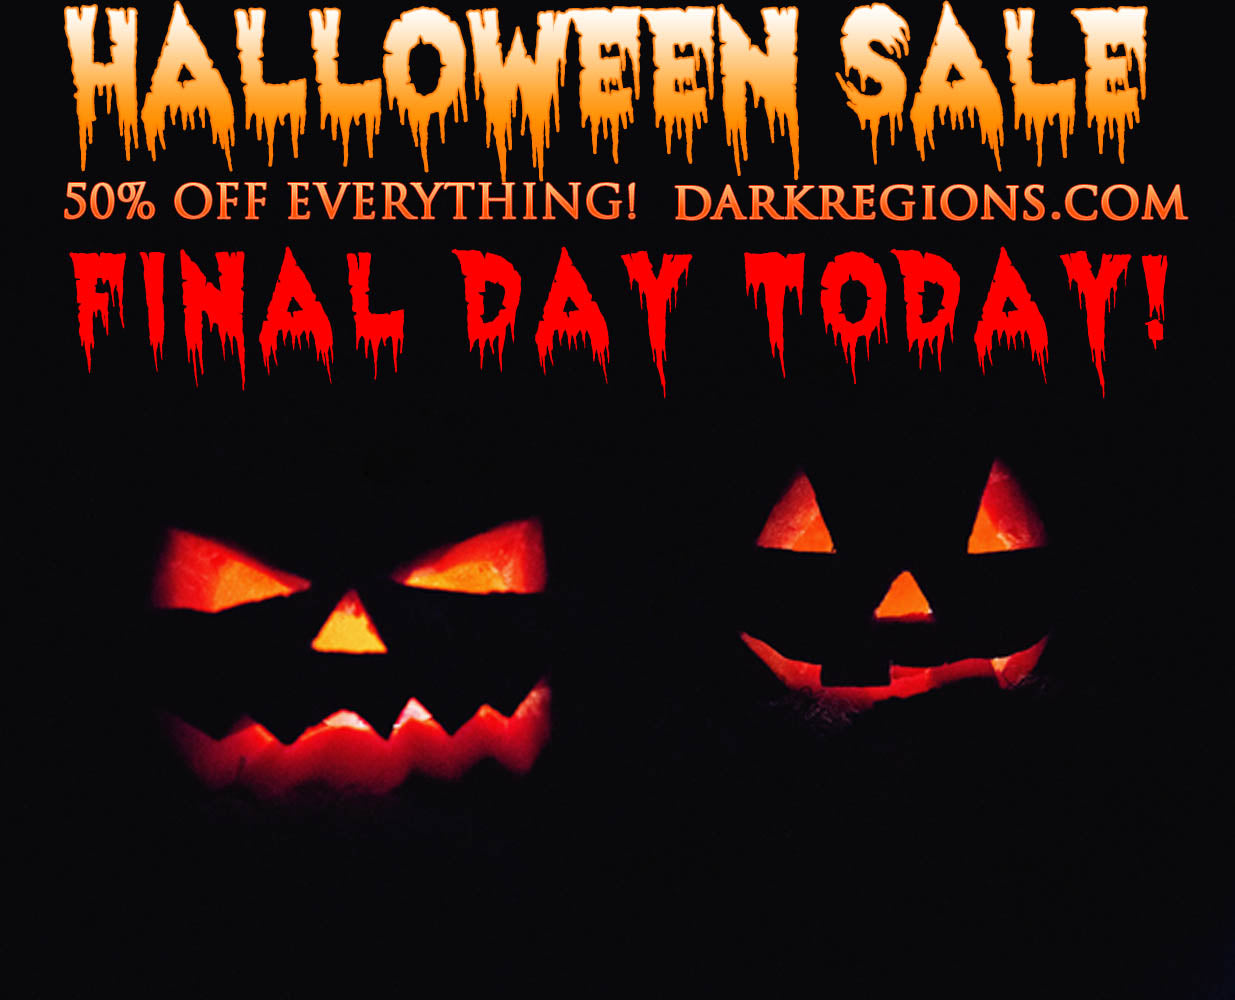 https://cdn.shopify.com/s/files/1/1858/2313/files/halloween-sale-image-social-media_copyfinalday_eb729aa9-b443-43d7-a6cd-ee4fb4a89de3.jpg?16815884490562336607